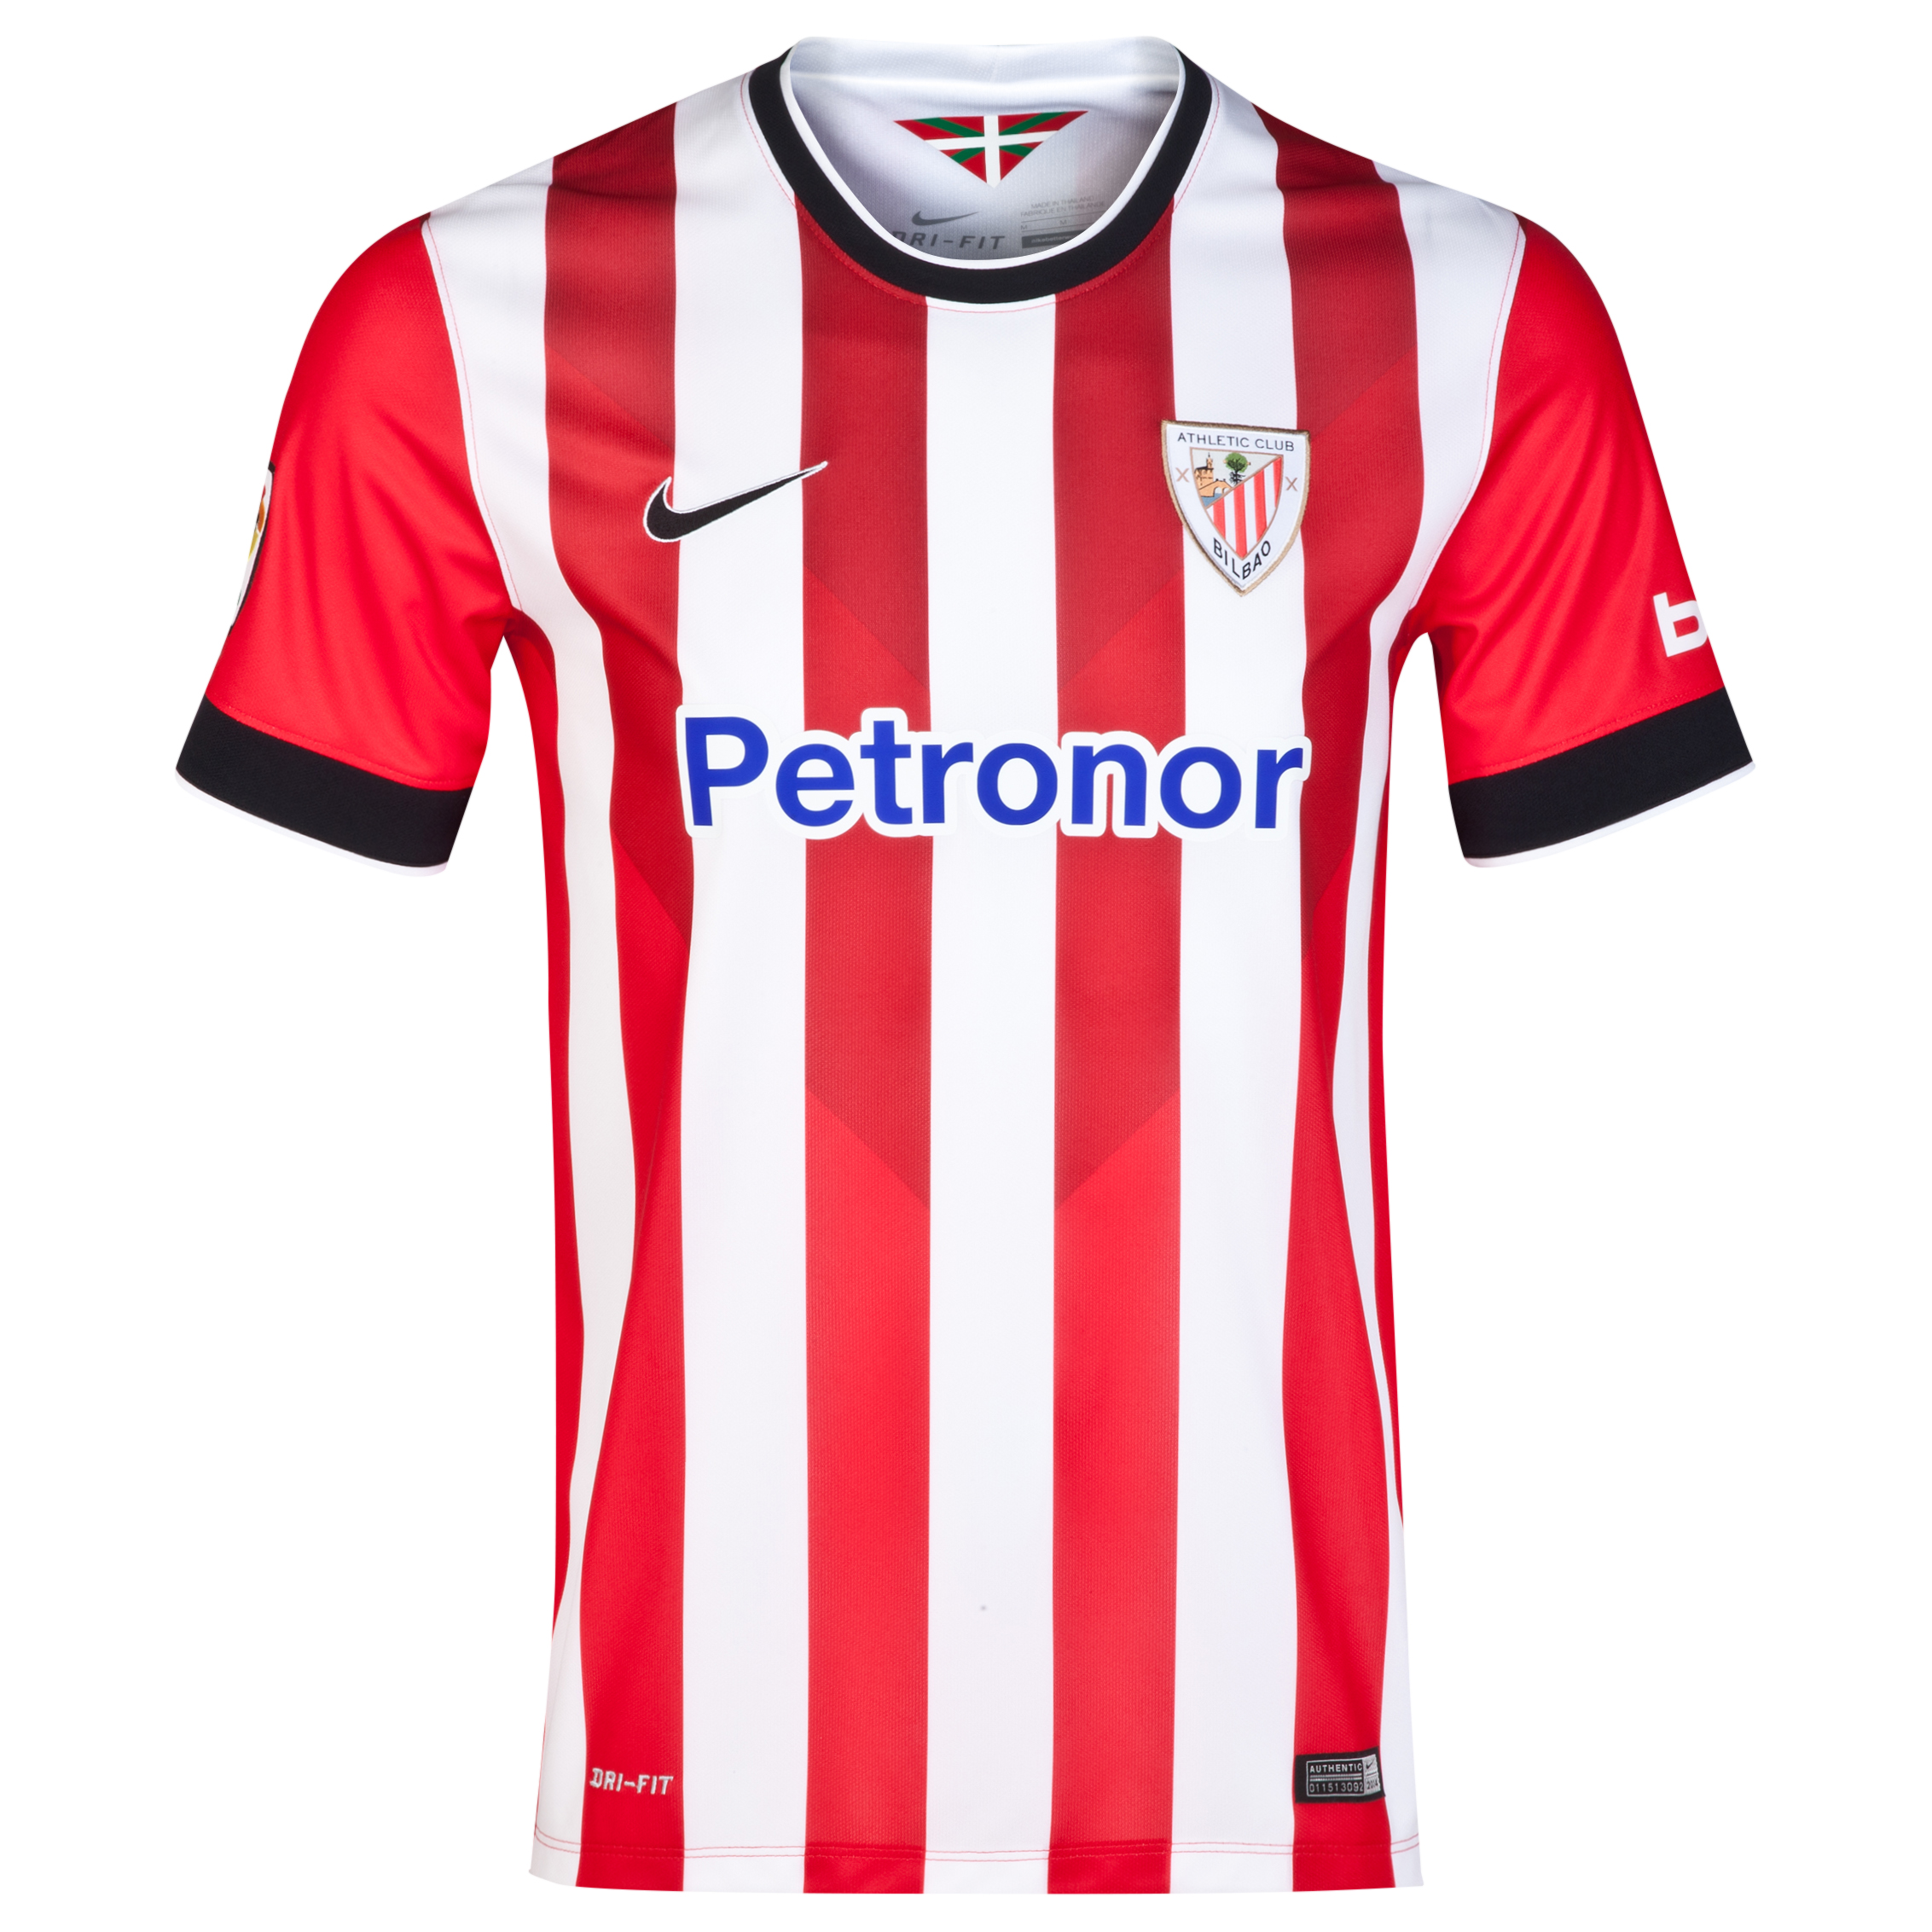 Athletico Bilbao Home Shirt 2014/15 Red